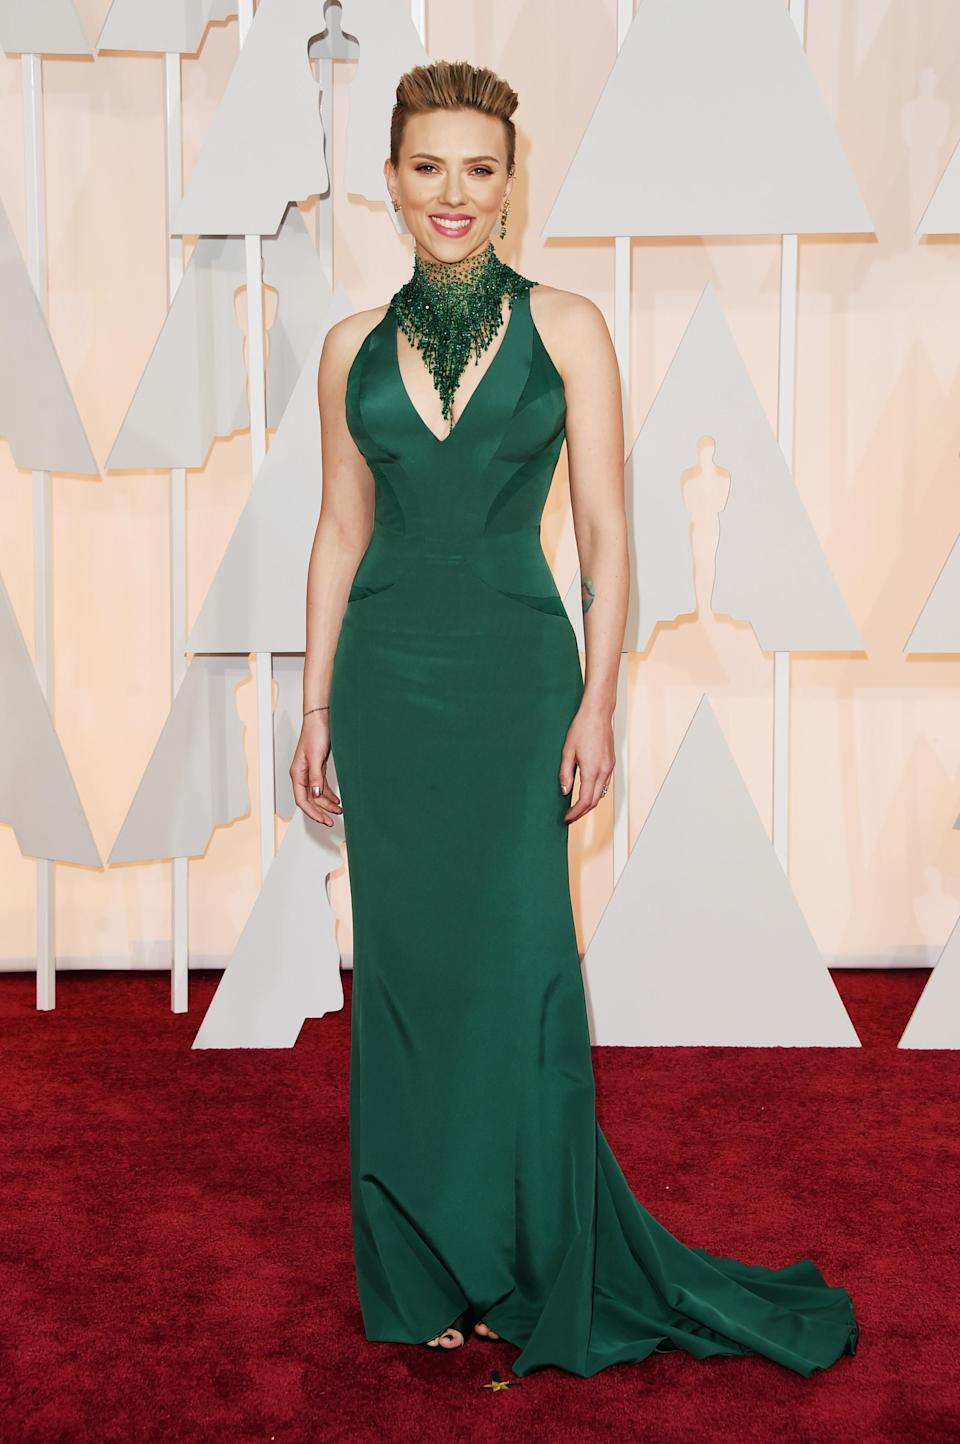 In 2015, ScarJo hit the Oscars red carpet in this slinky Versace number and supersized necklace. She finished the look with a slicked back hairdo and bright lippy. Needless to say, the outfit was a hit.